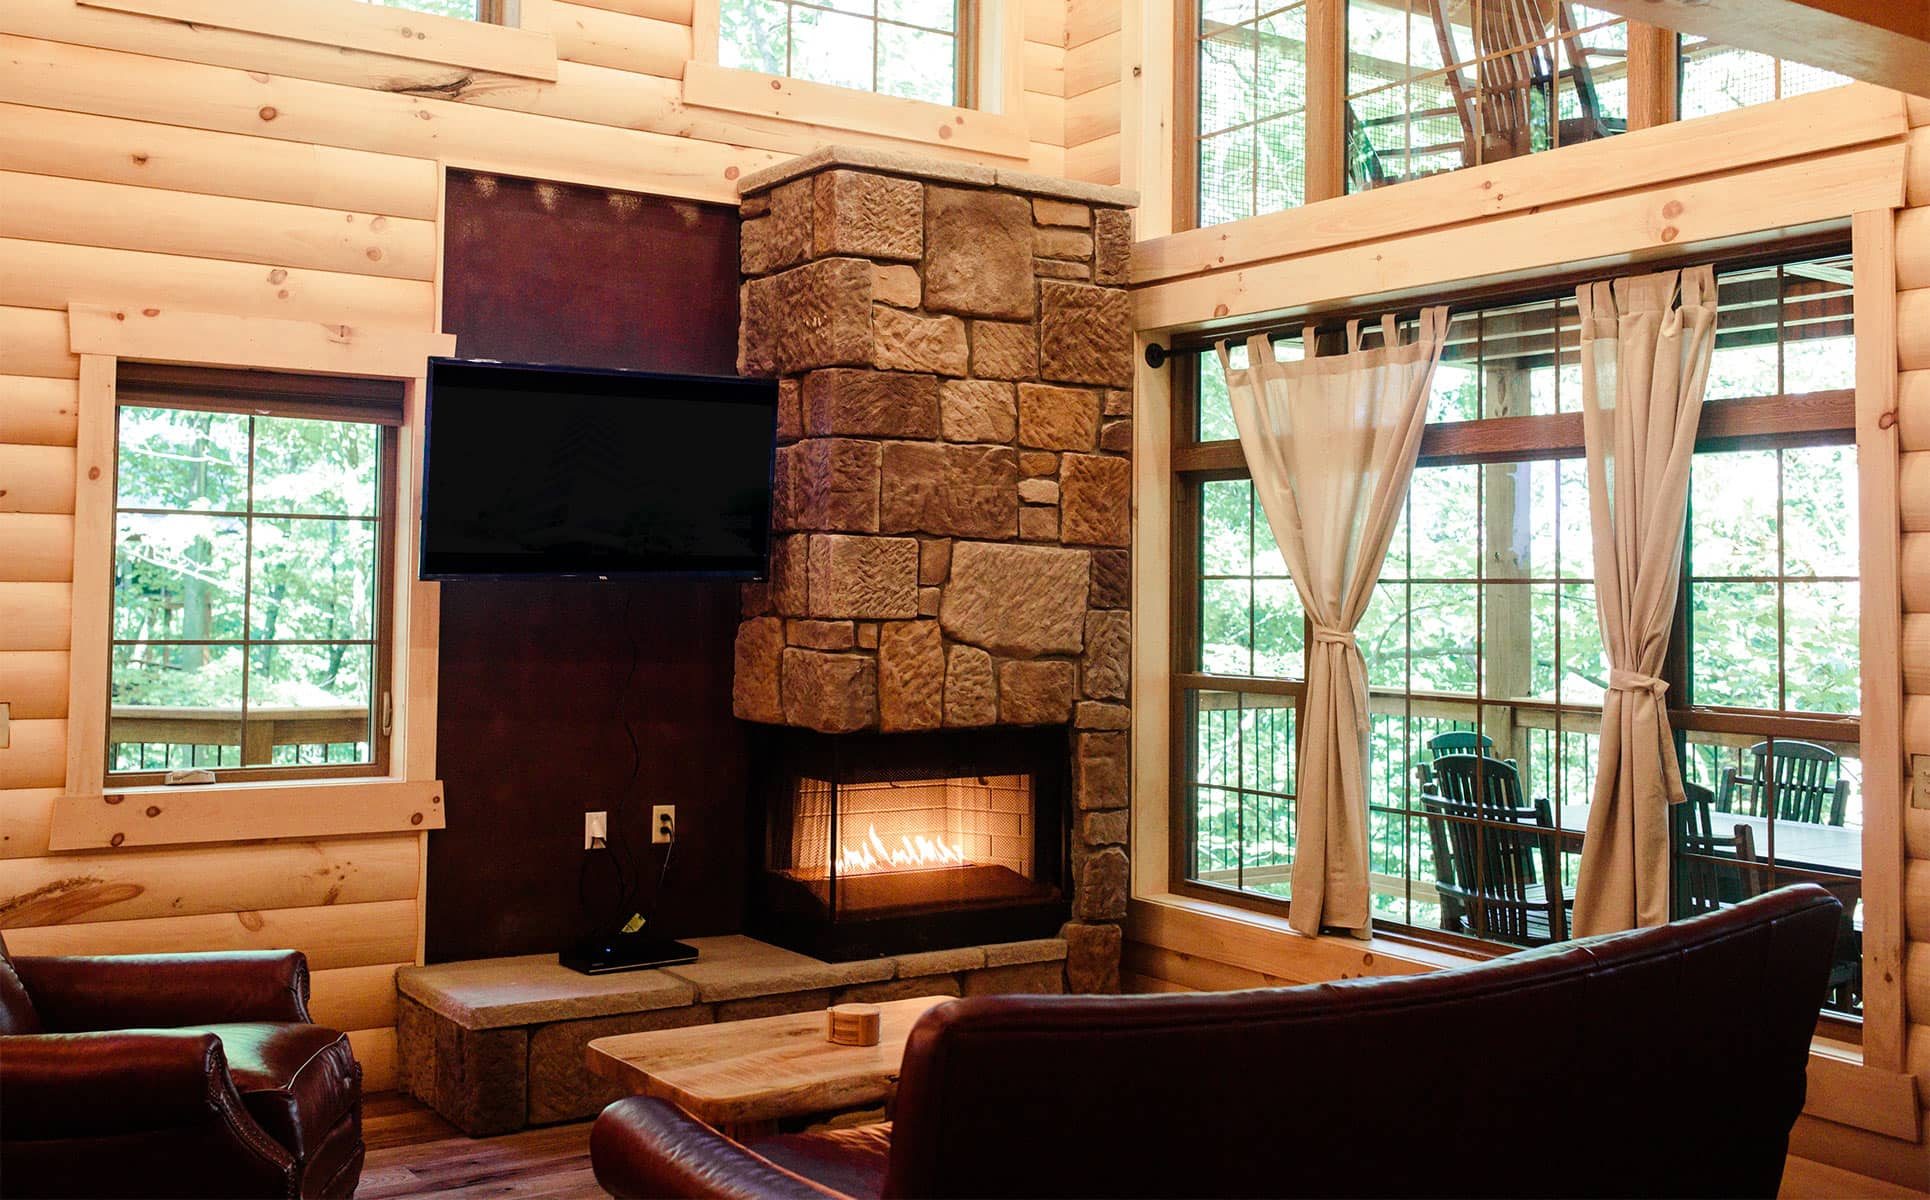 Fireplace, tv,  and tall windows